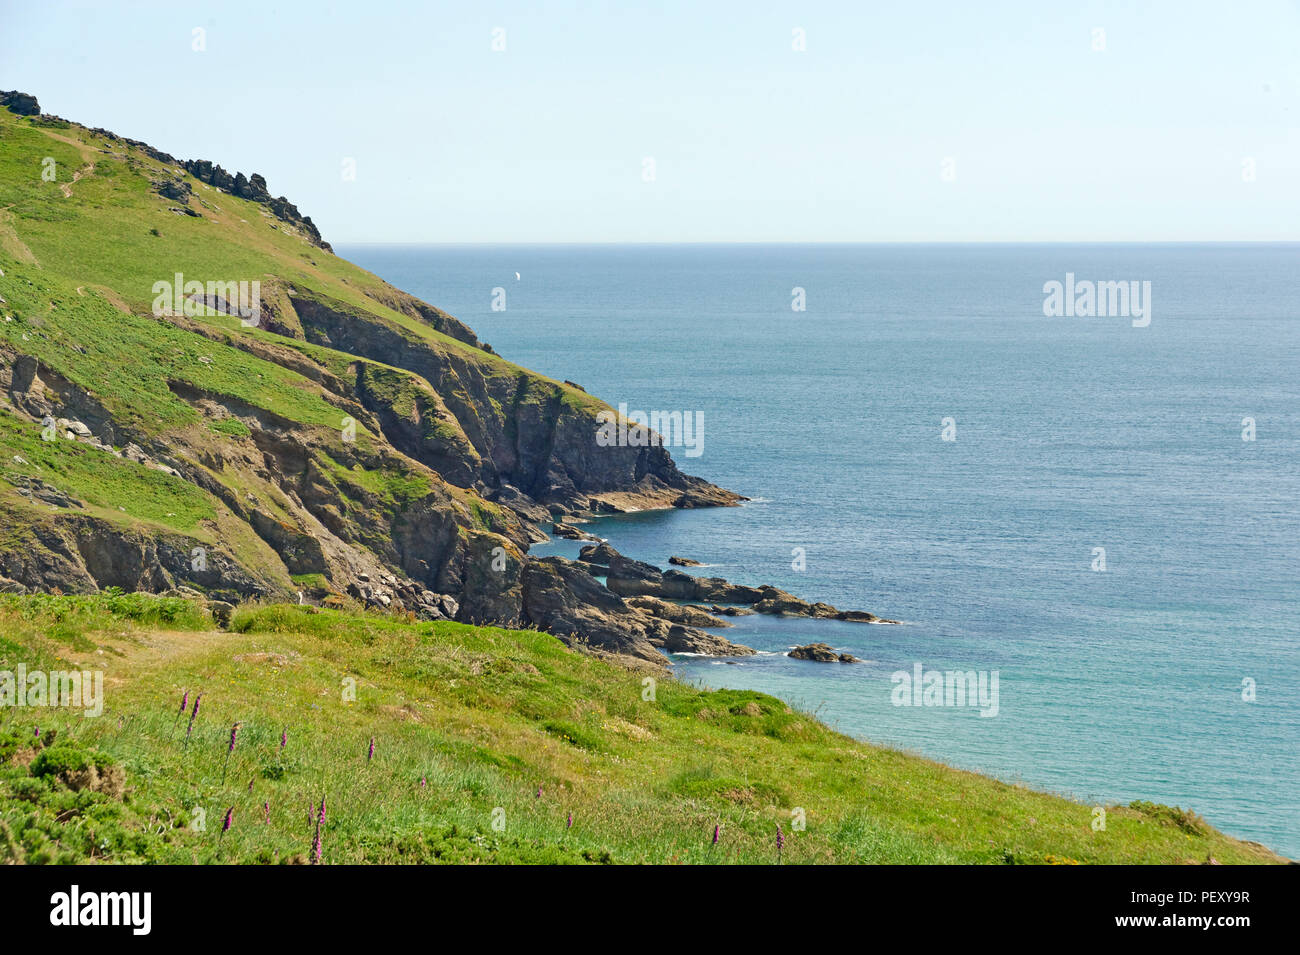 A section of the southwest coastal footpath near Hope Cove in the South Hams Devon uk - Stock Image